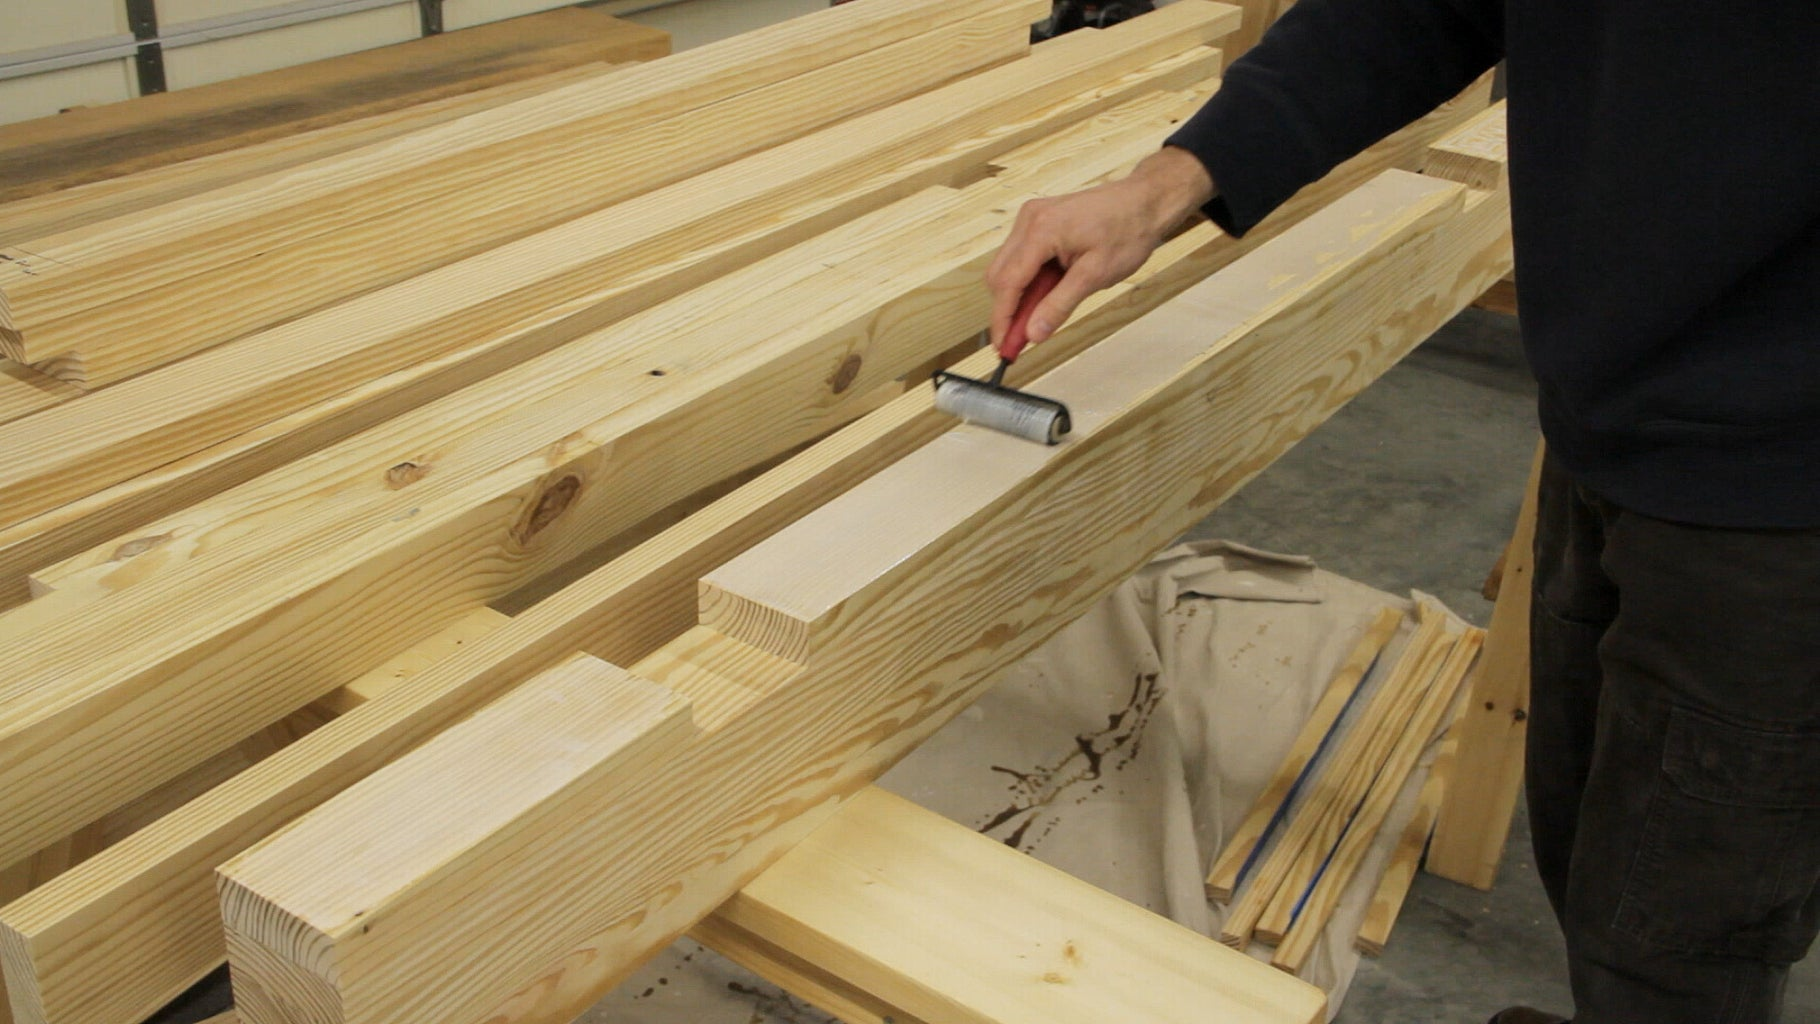 Laminating the Mortises in the Top